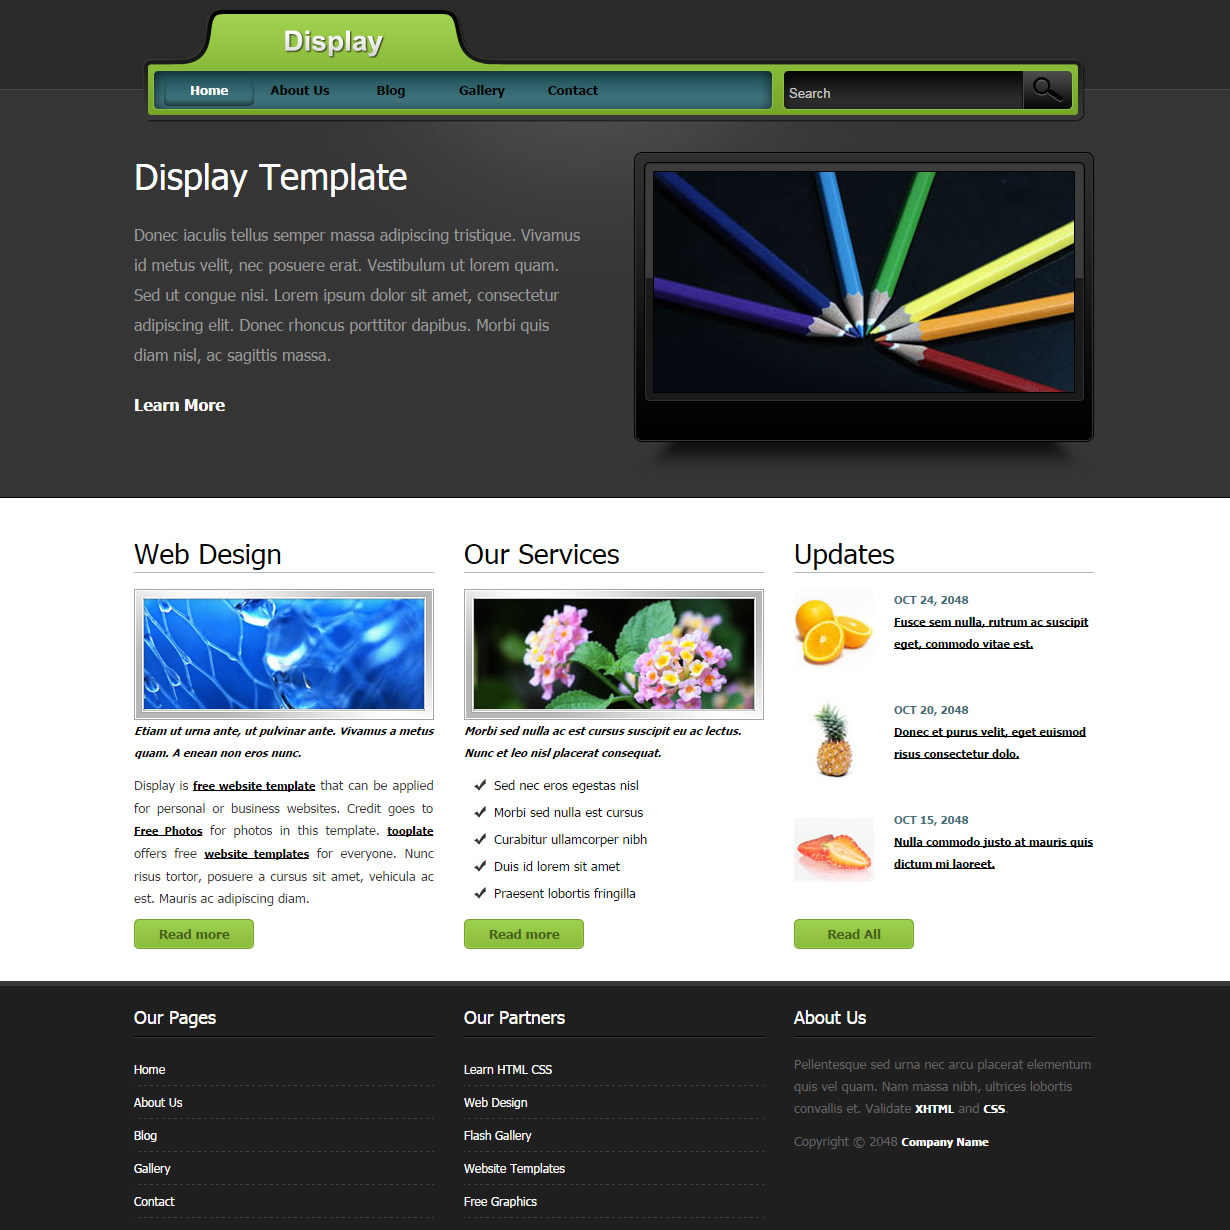 Display - Free HTML CSS Templates